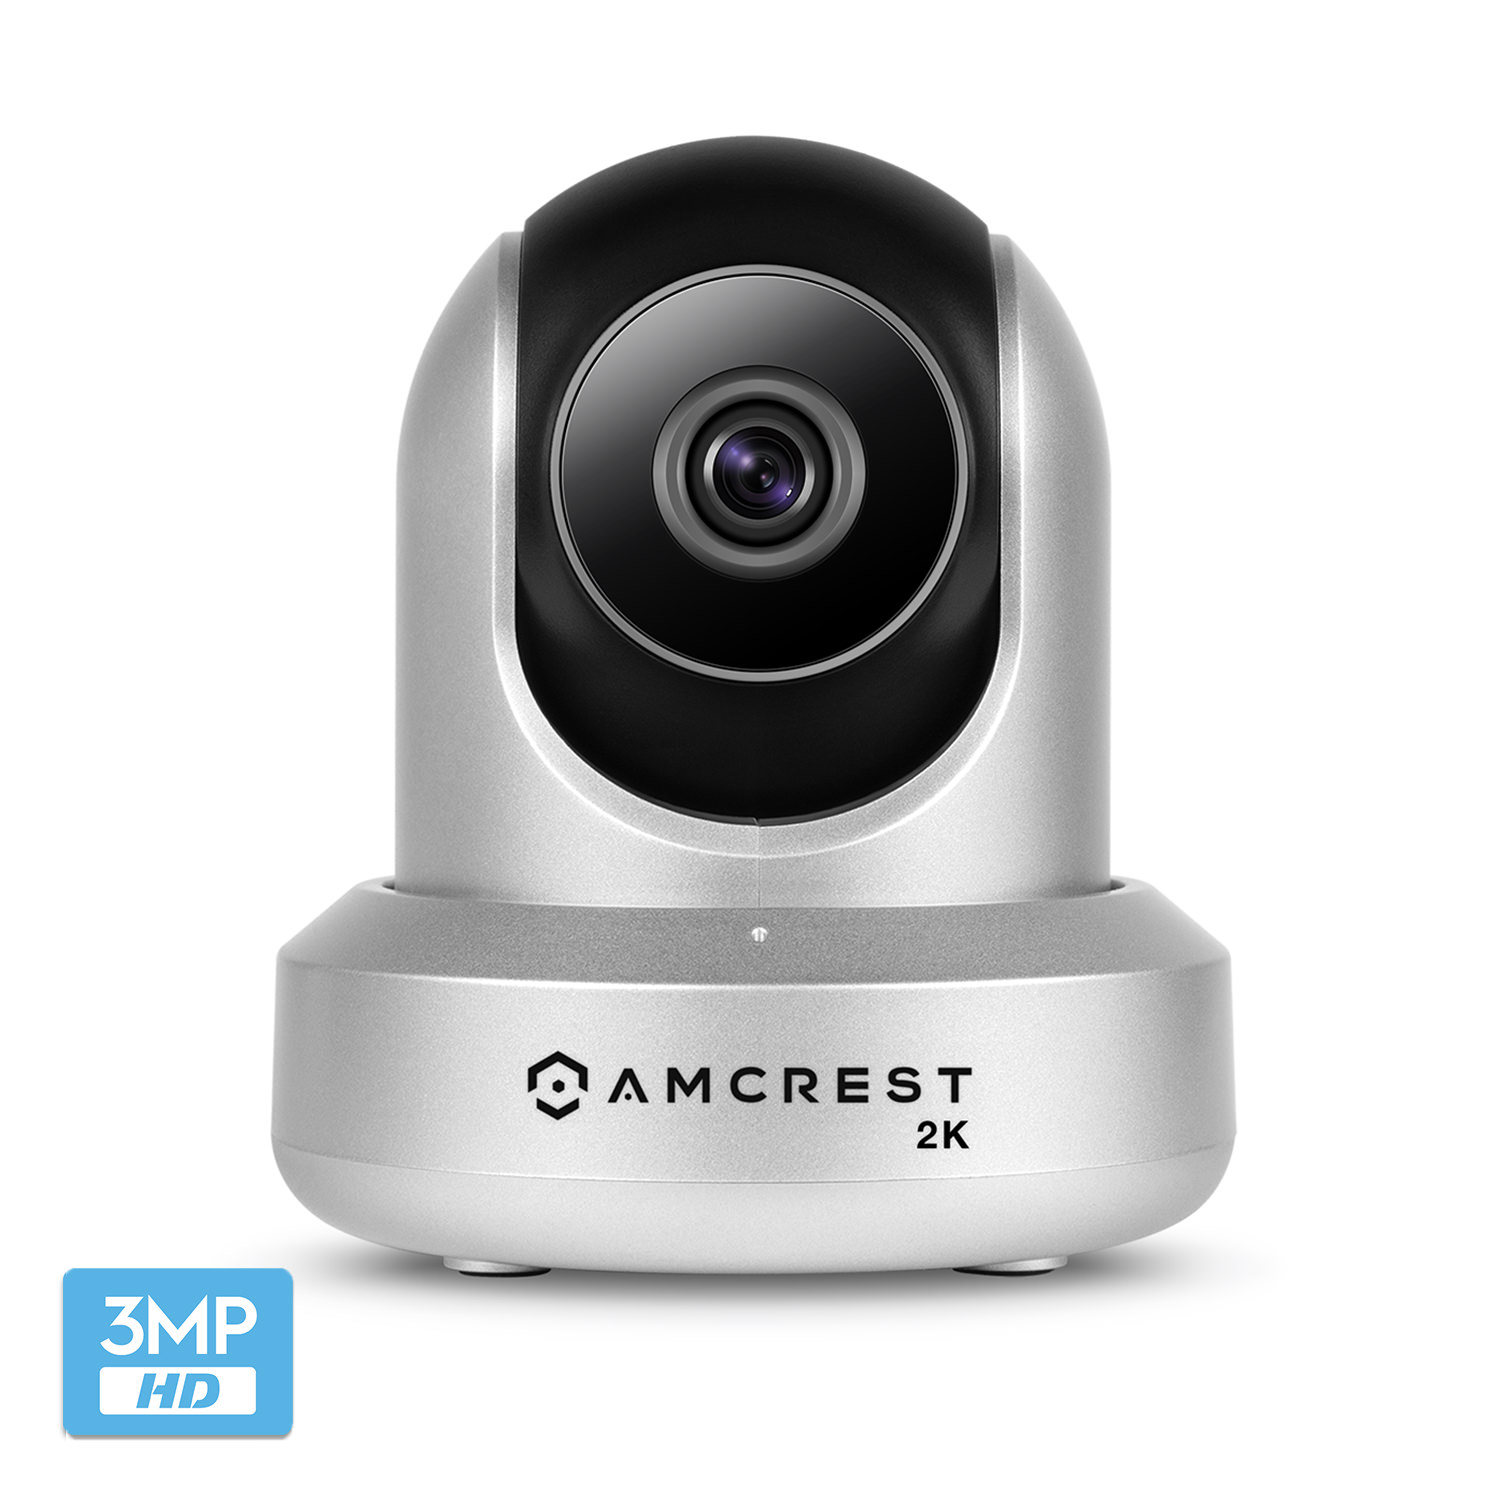 Amcrest UltraHD 2K (3MP/2304TVL) WiFi Video Security IP Camera with Pan/Tilt, Two-Way Audio, 3MP @ 20FPS, Wide 90° Viewing Angle and Night Vision IP3M-941B (Black)